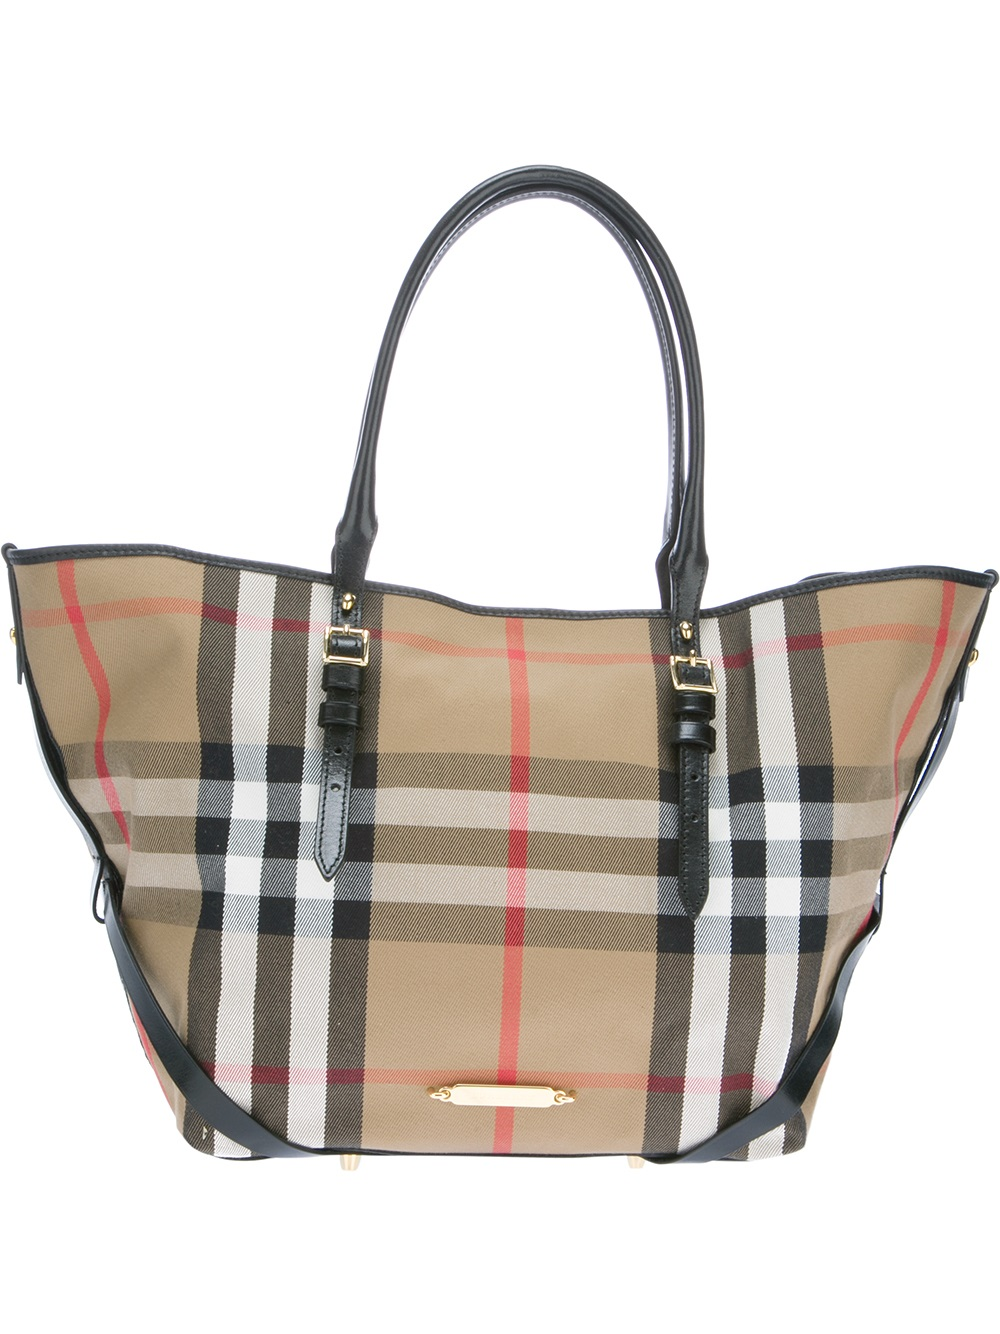 41ccf0abe6f5 Lyst - Burberry Salisbury Tote in Brown